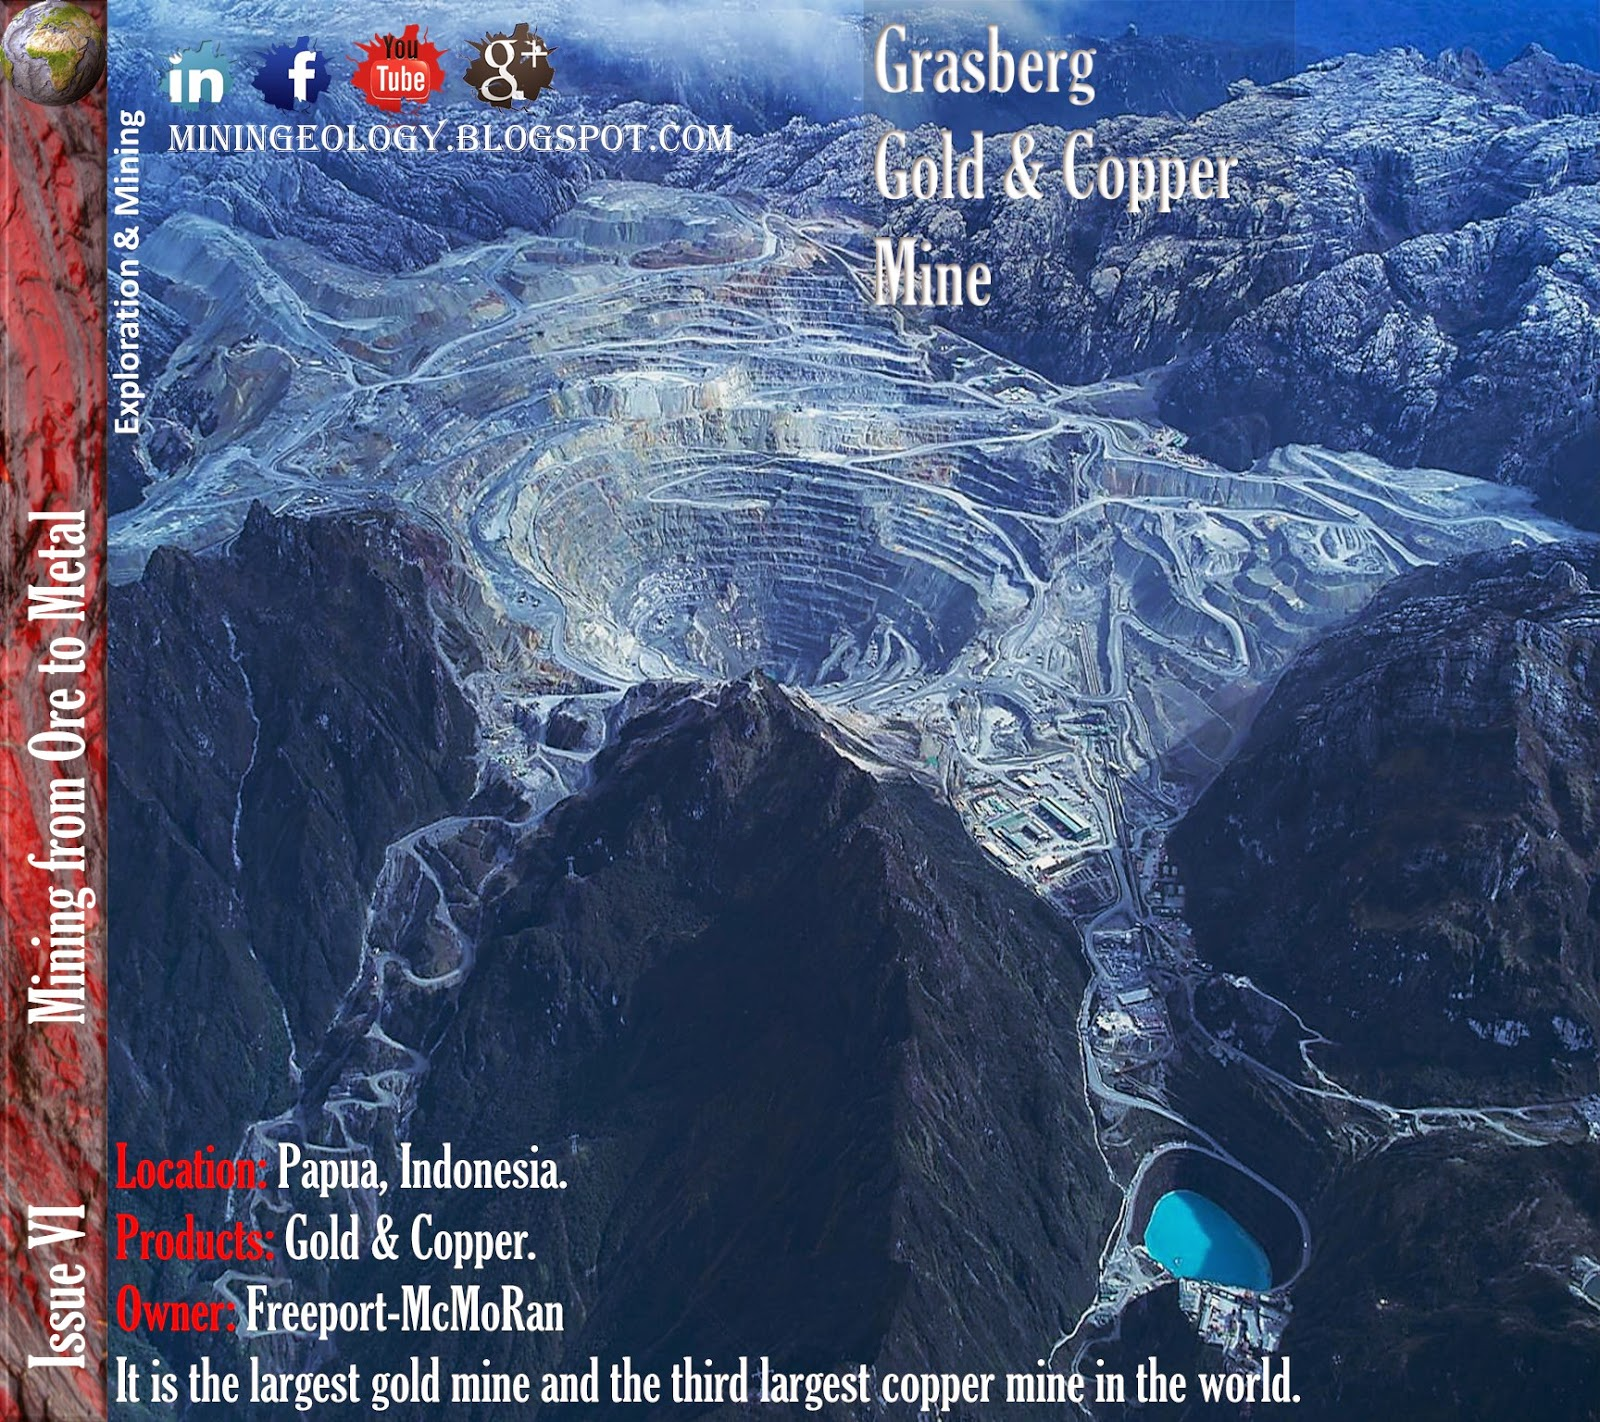 Grasberg Gold & Copper Mine